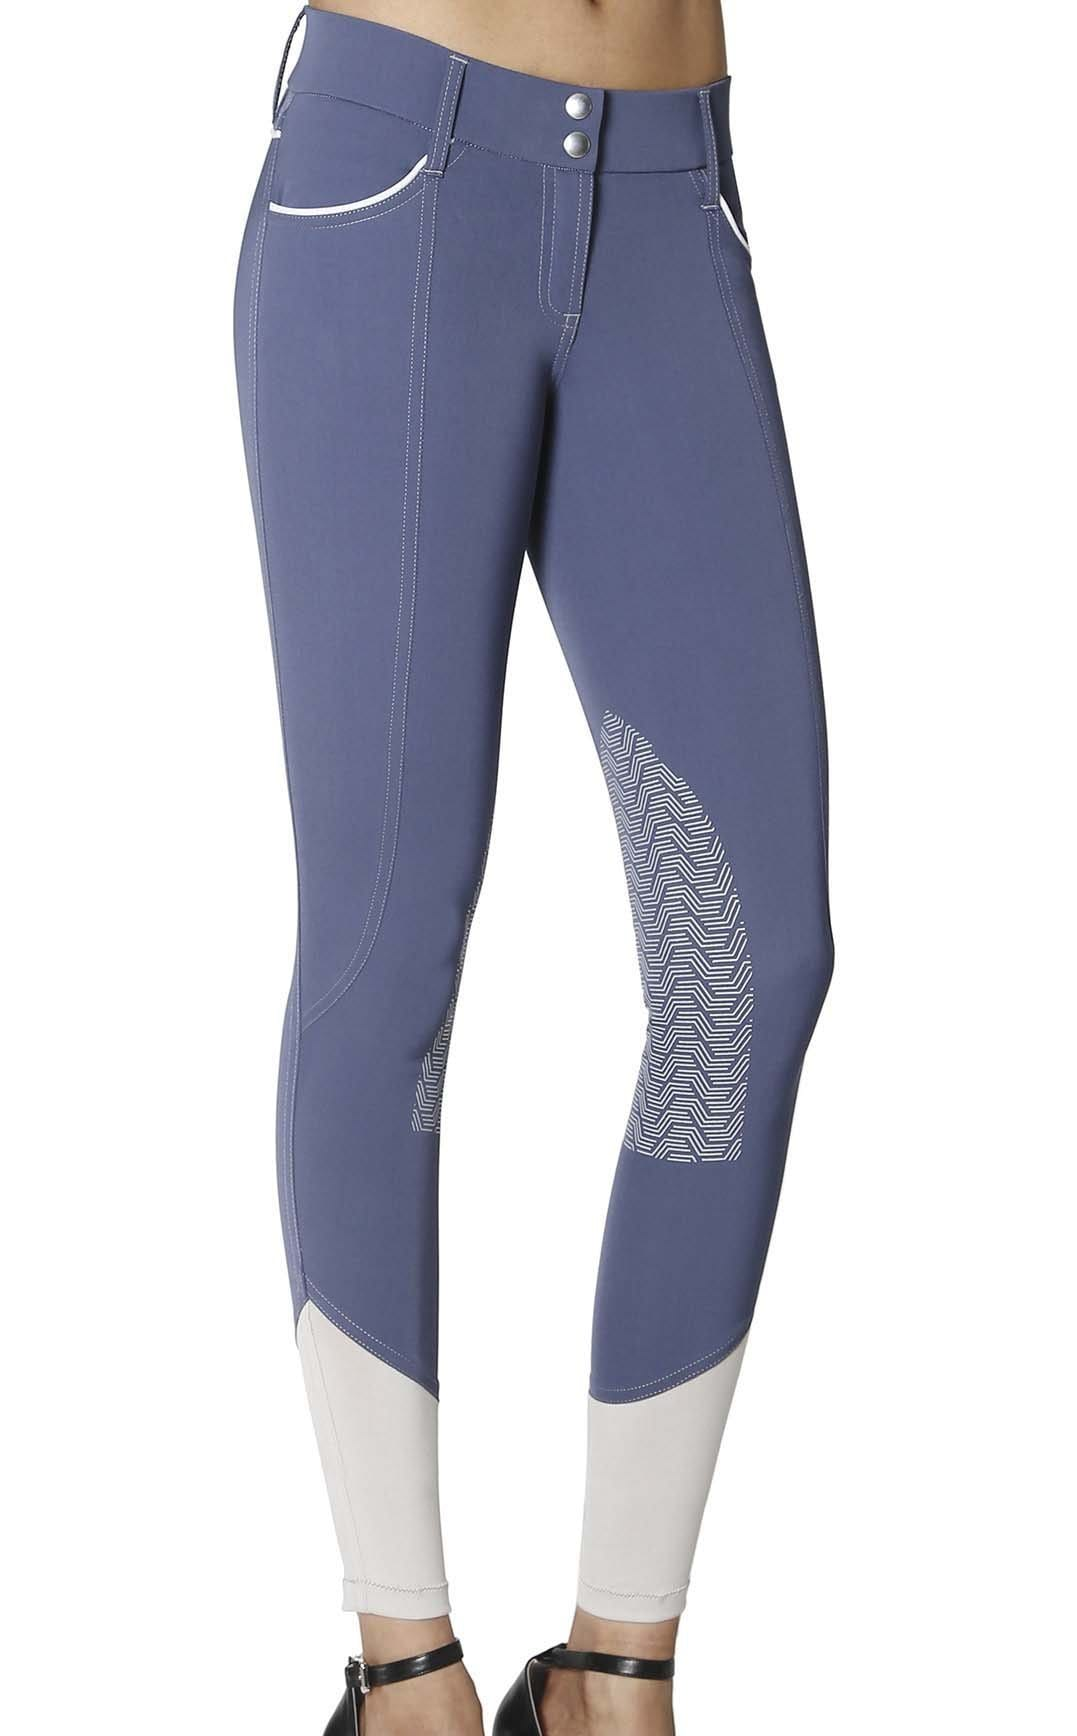 GhoDho Breeches GhoDho Elara Breeches equestrian team apparel online tack store mobile tack store custom farm apparel custom show stable clothing equestrian lifestyle horse show clothing riding clothes horses equestrian tack store